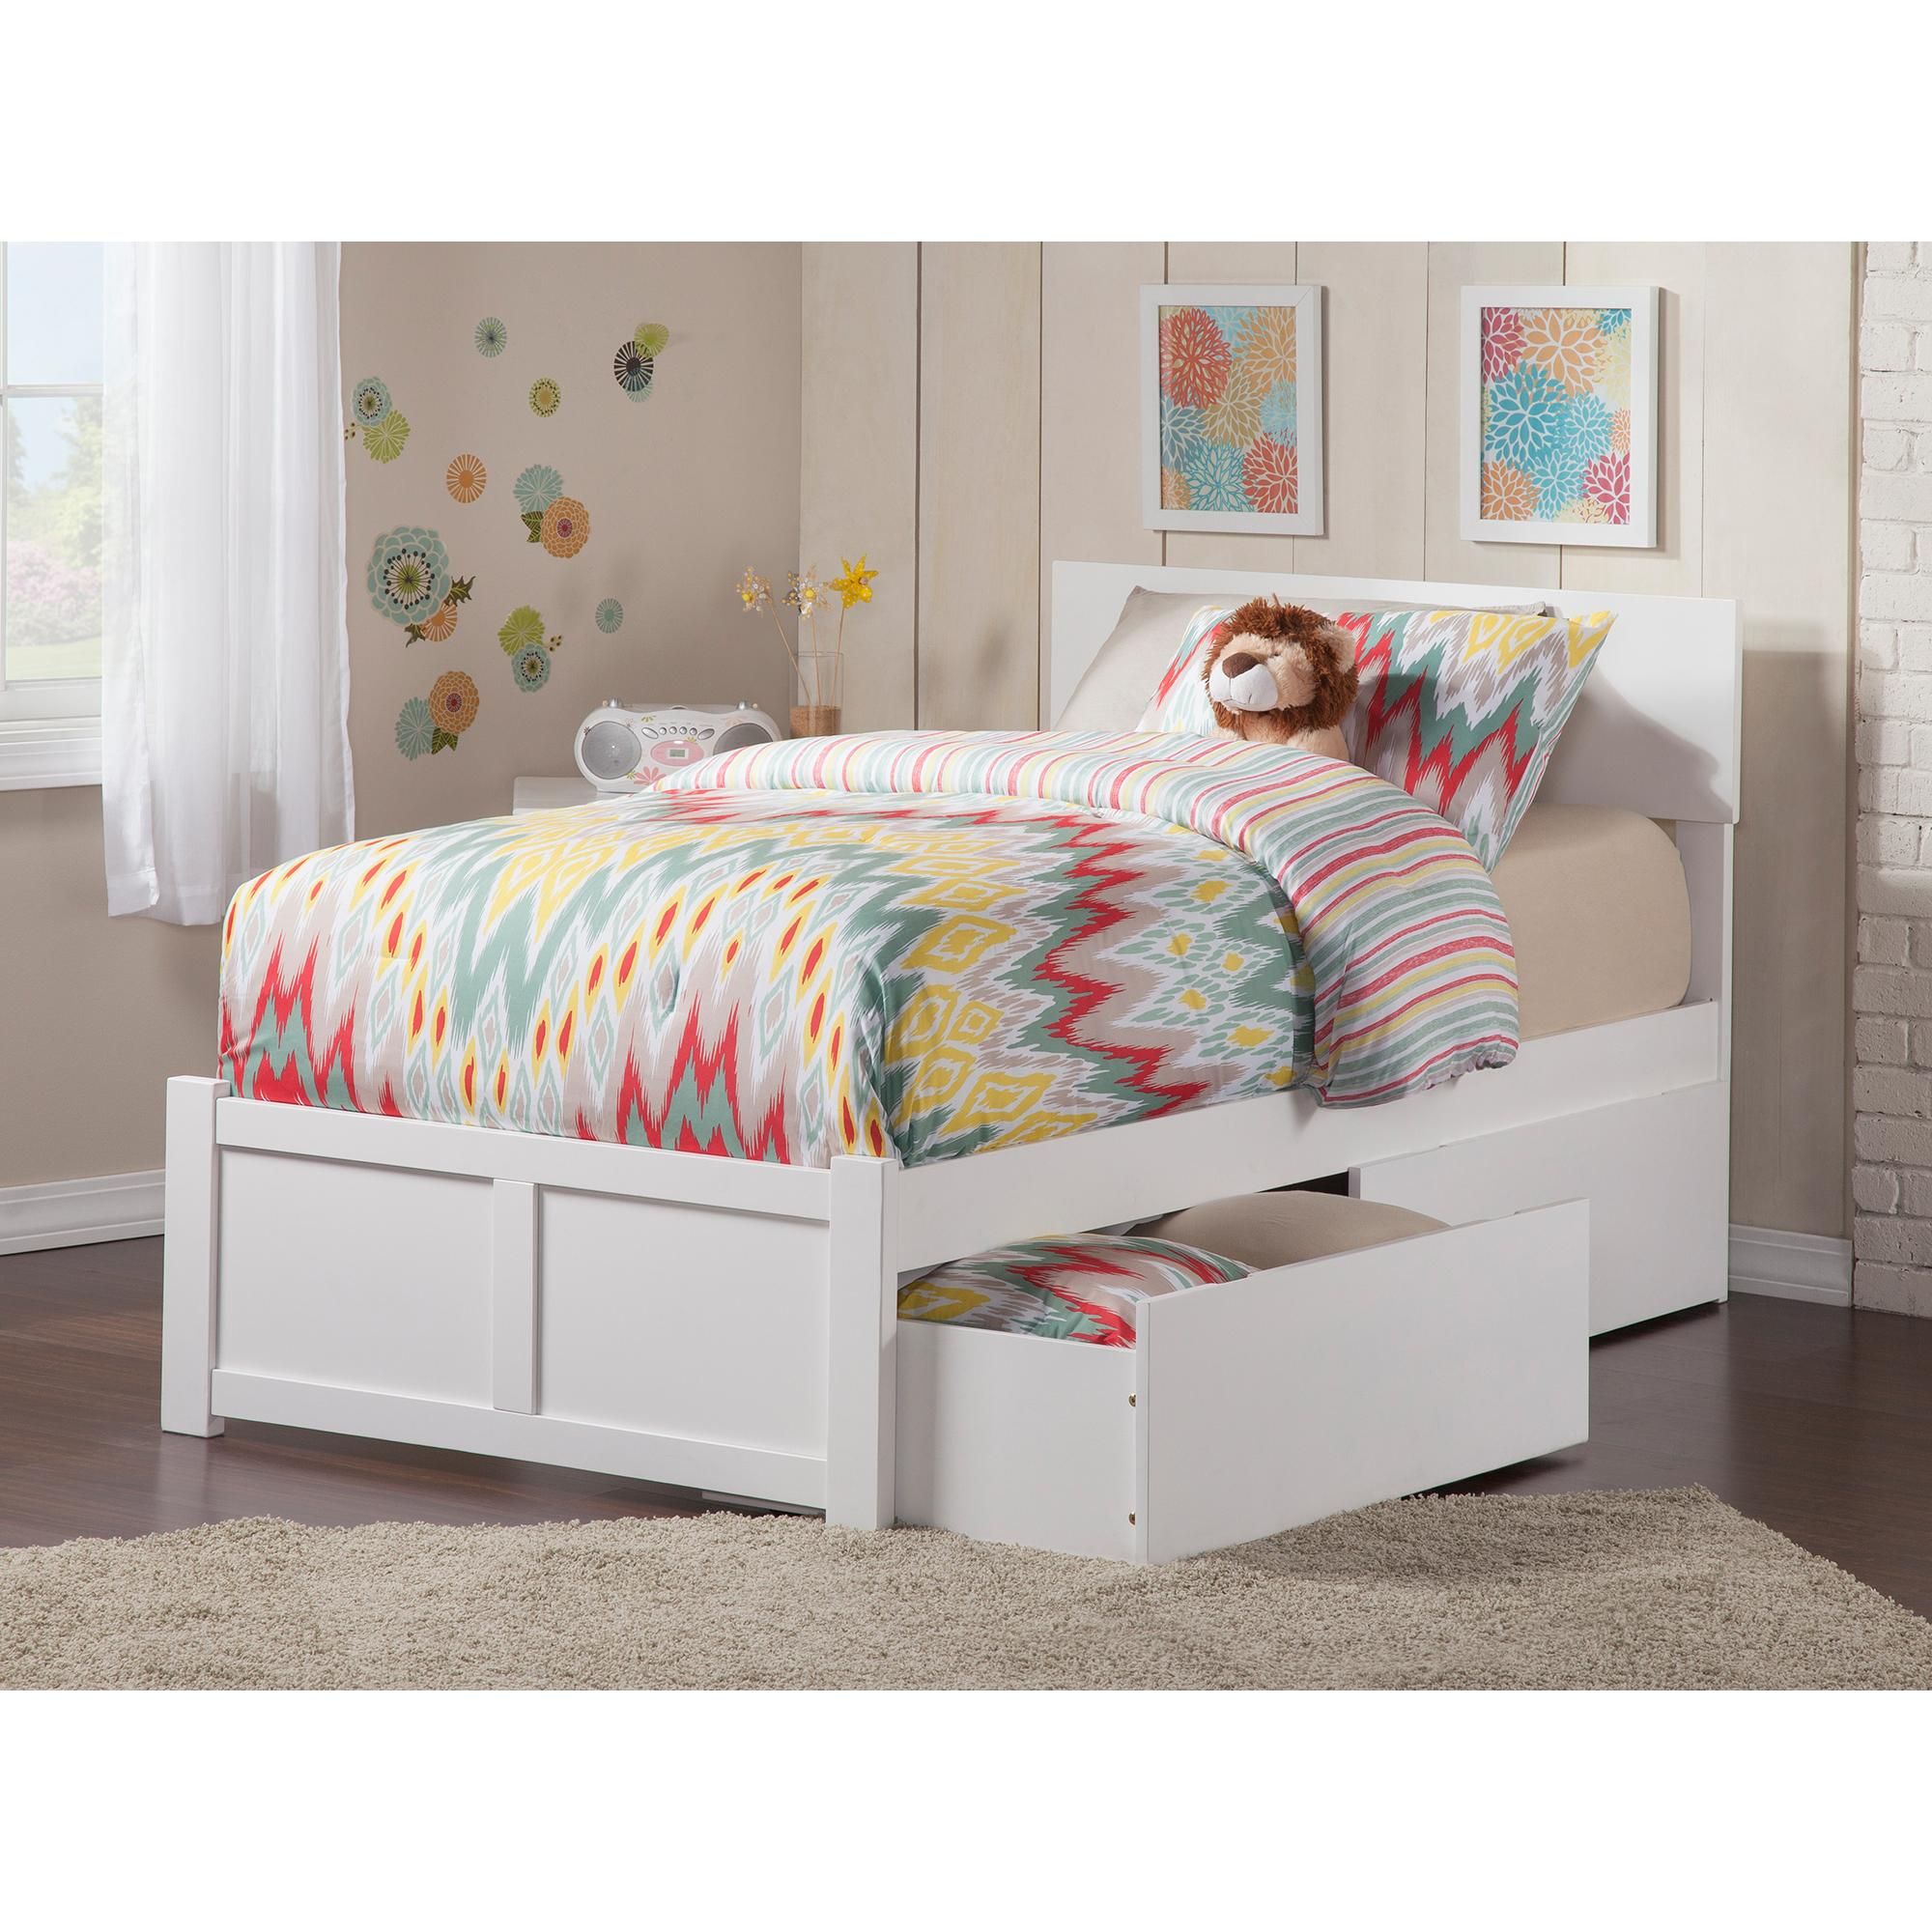 Picture of: Eco Friendly Twin Xl Bed In White Finish Atlantic Furniture 77 In Home Kitchen Kids Furniture